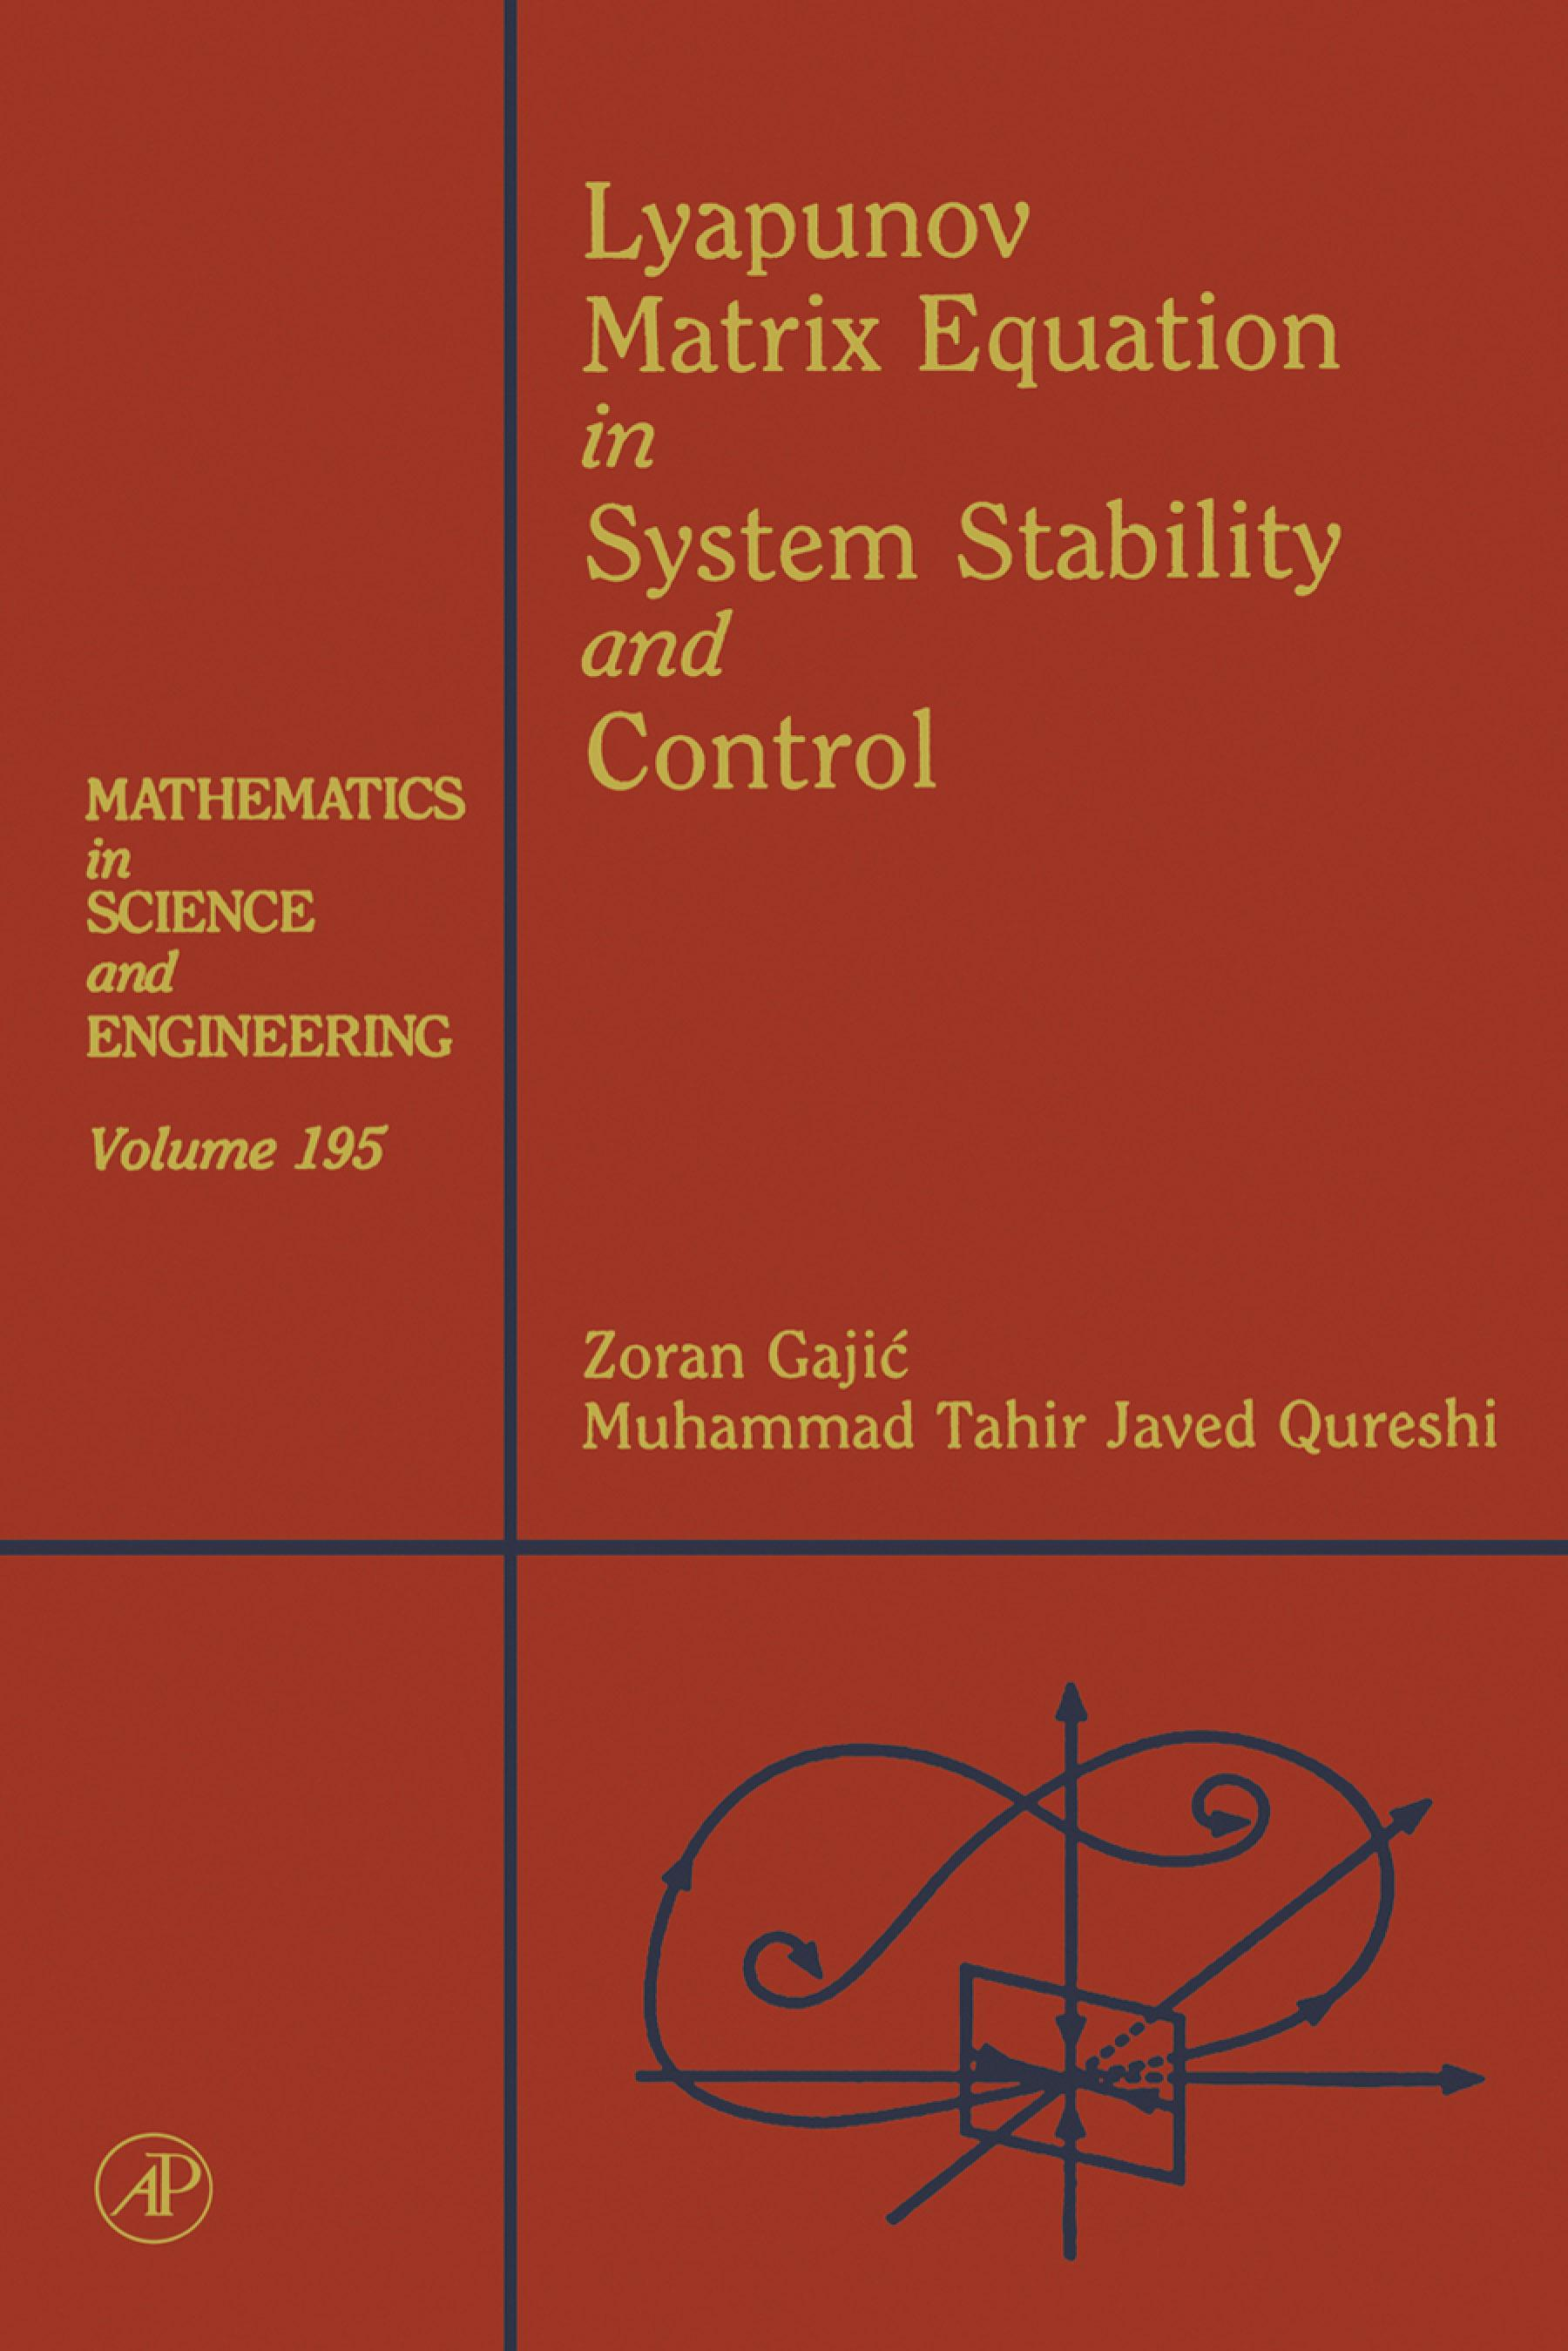 Lyapunov Matrix Equation in System Stability and Control: Mathematics in Science and Engineering V195 EB9780080535678